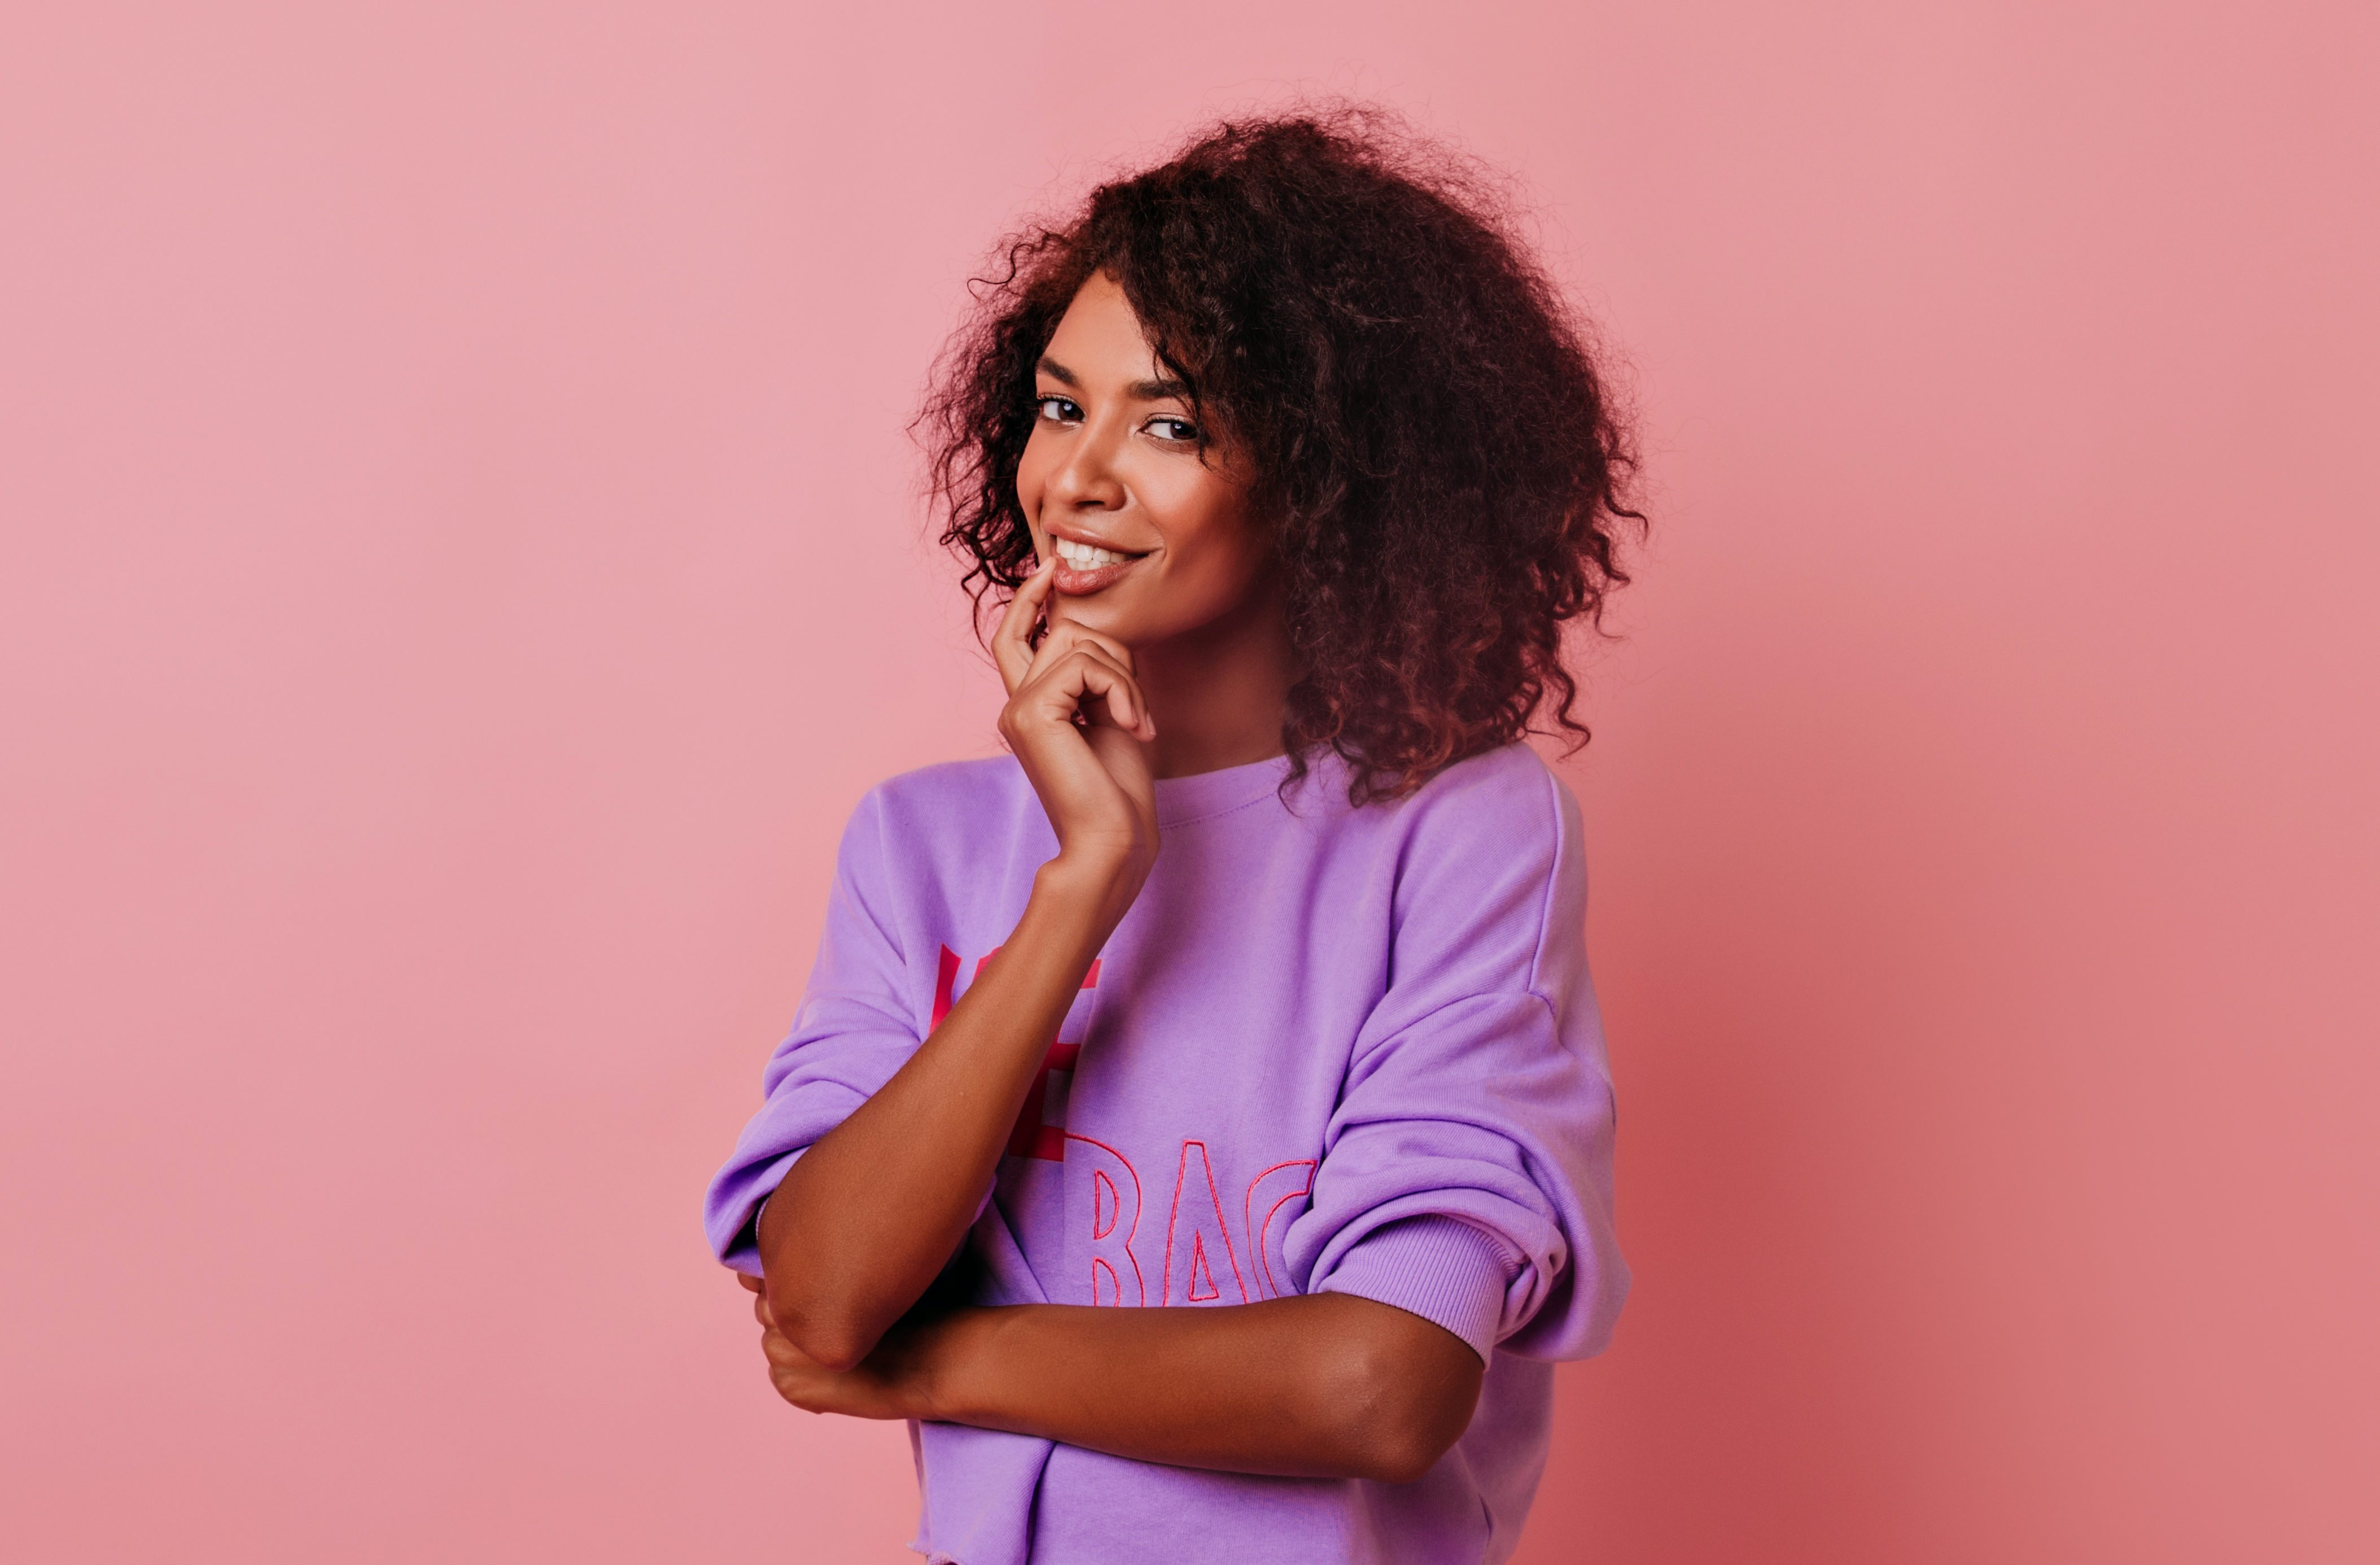 Curious pretty woman with curly hairstyle standing on rosy background. Portrait of joyful african female model gently smiling to camera.